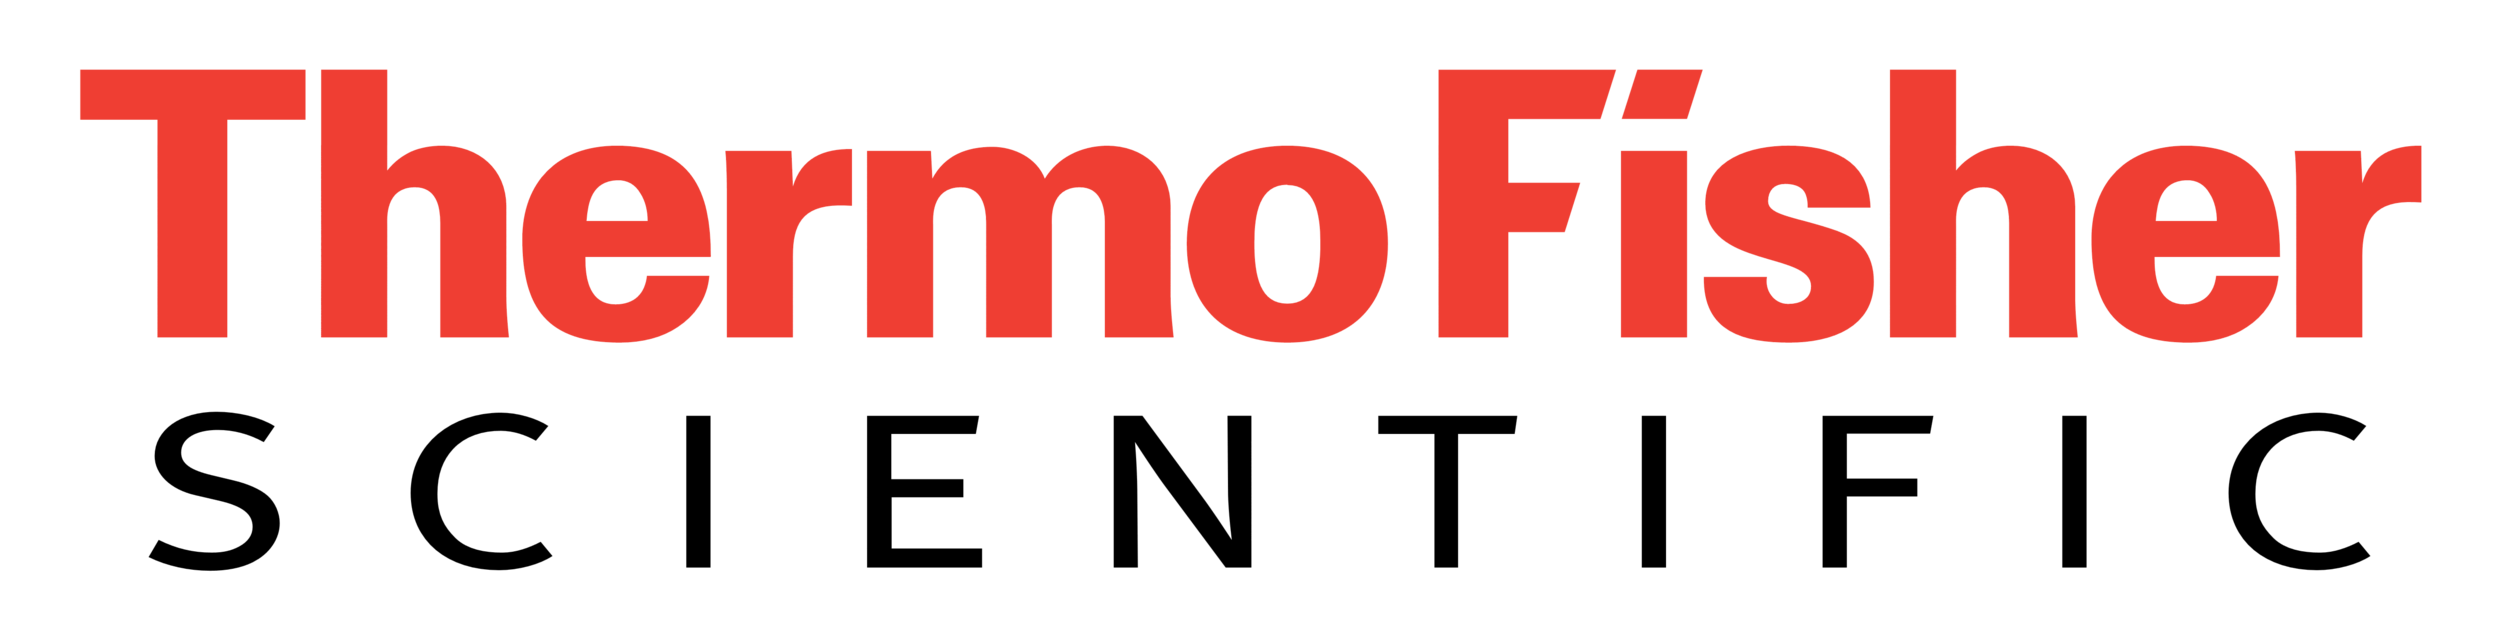 PNGPIX-COM-Thermo-Fisher-Scientific-Logo-PNG-Transparent.png